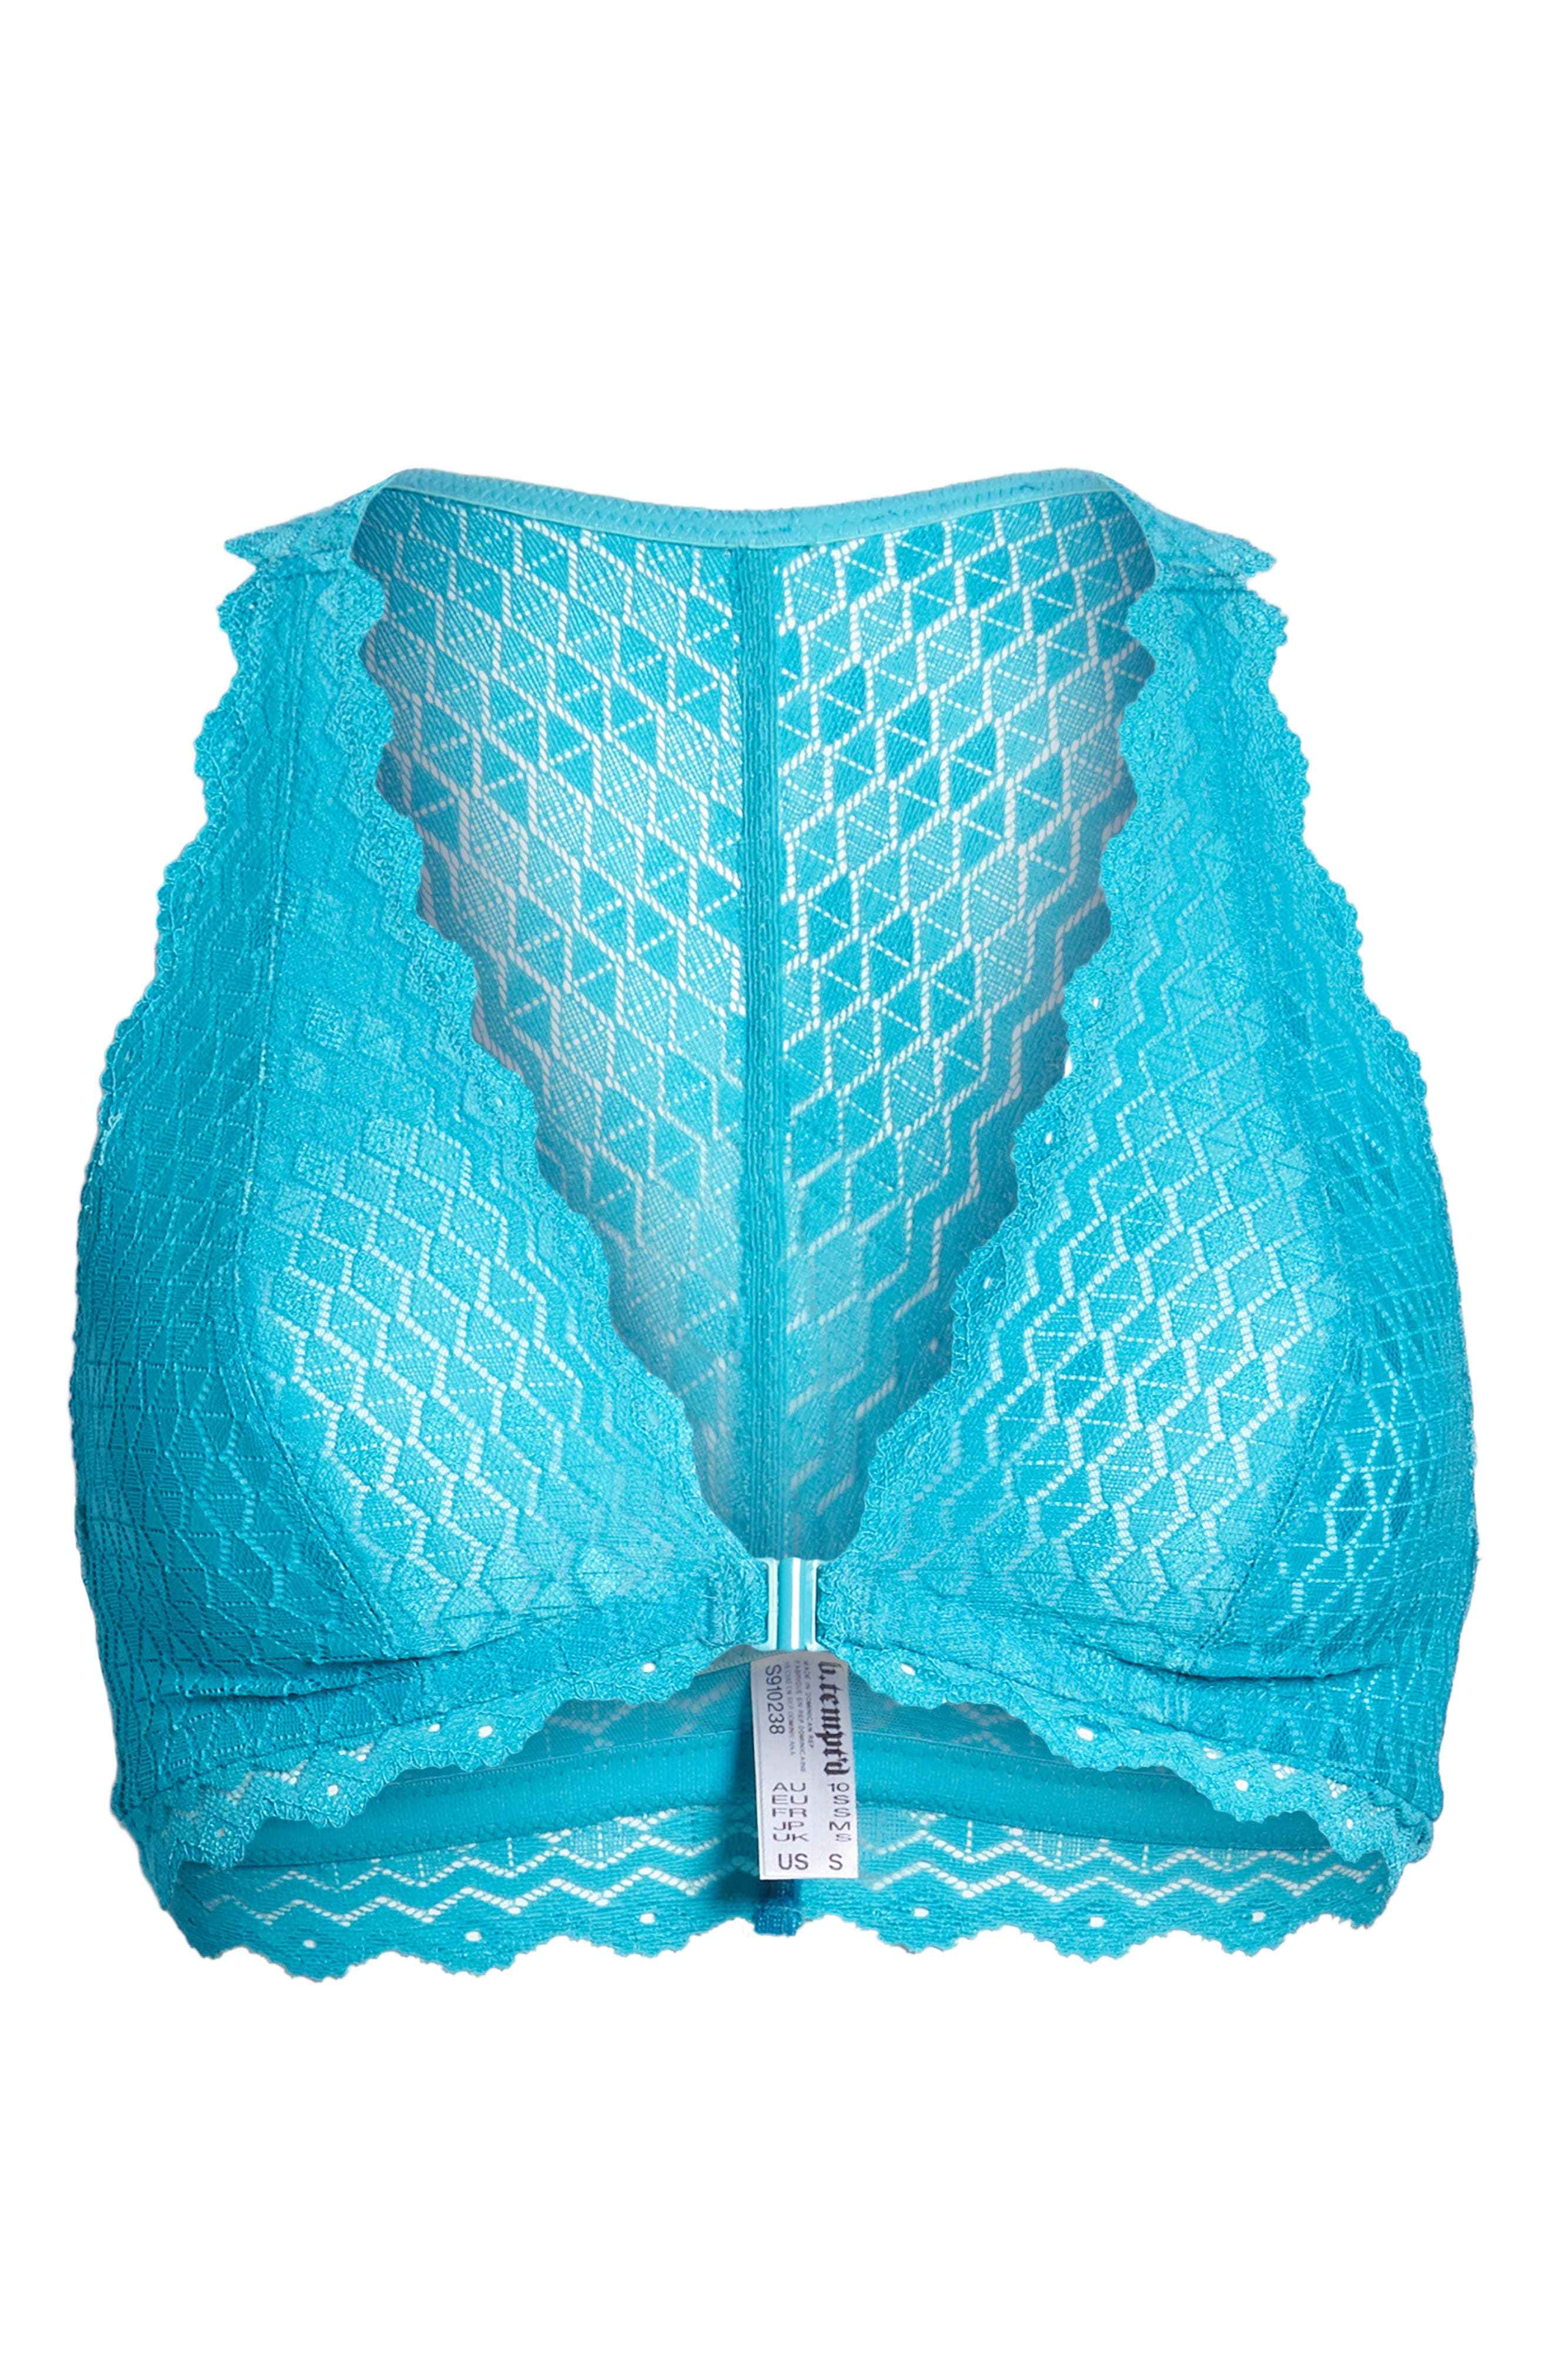 b.tempted by Wacoal Plunge Lace Bralette,                             Alternate thumbnail 22, color,